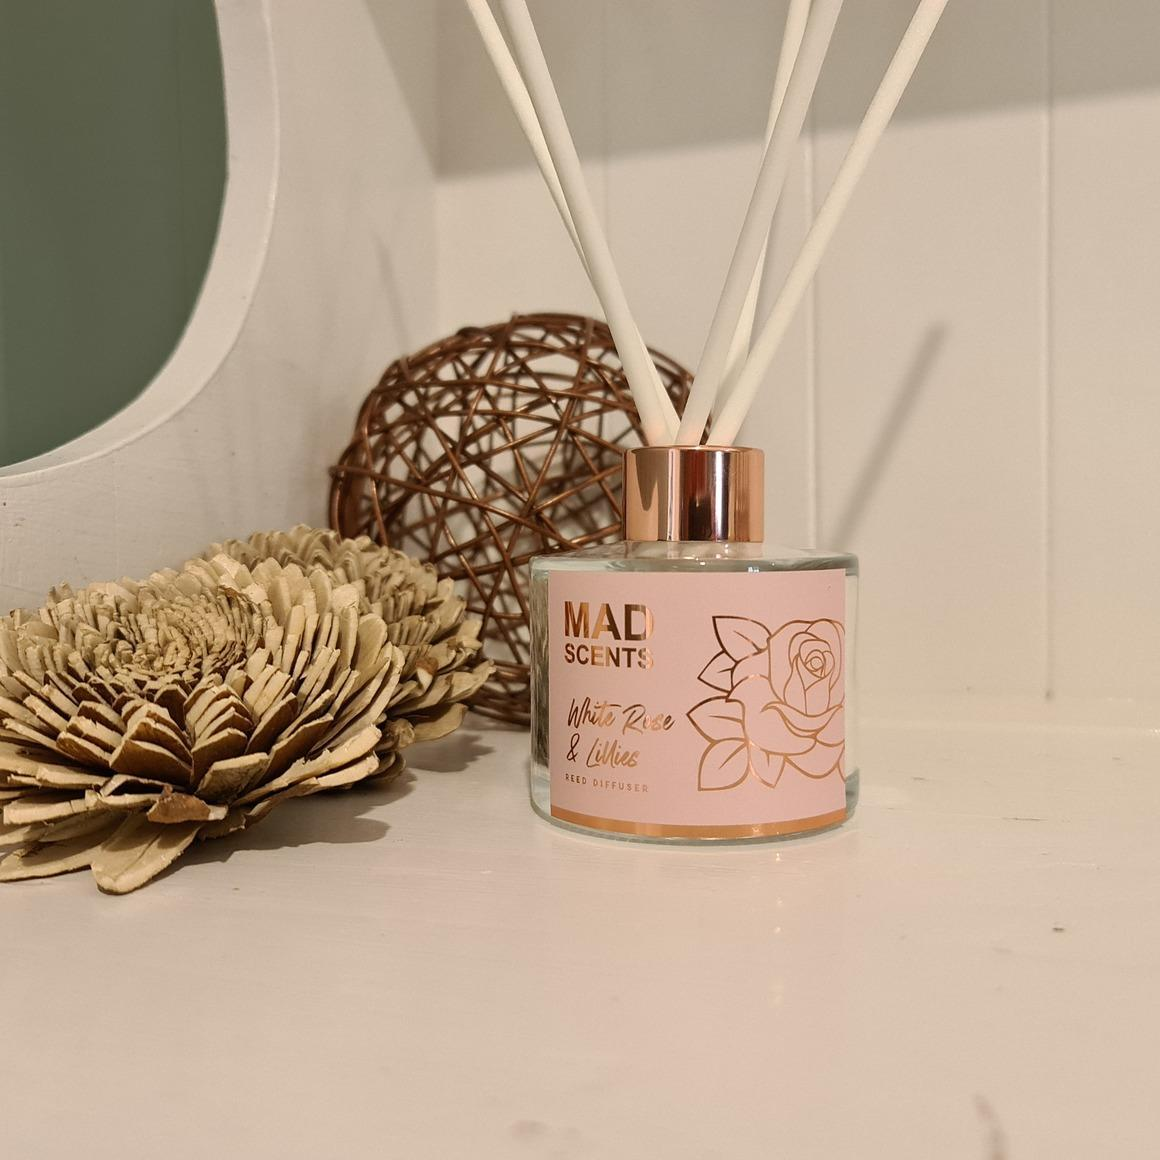 White rose & lillies reed diffuser | Trada Marketplace